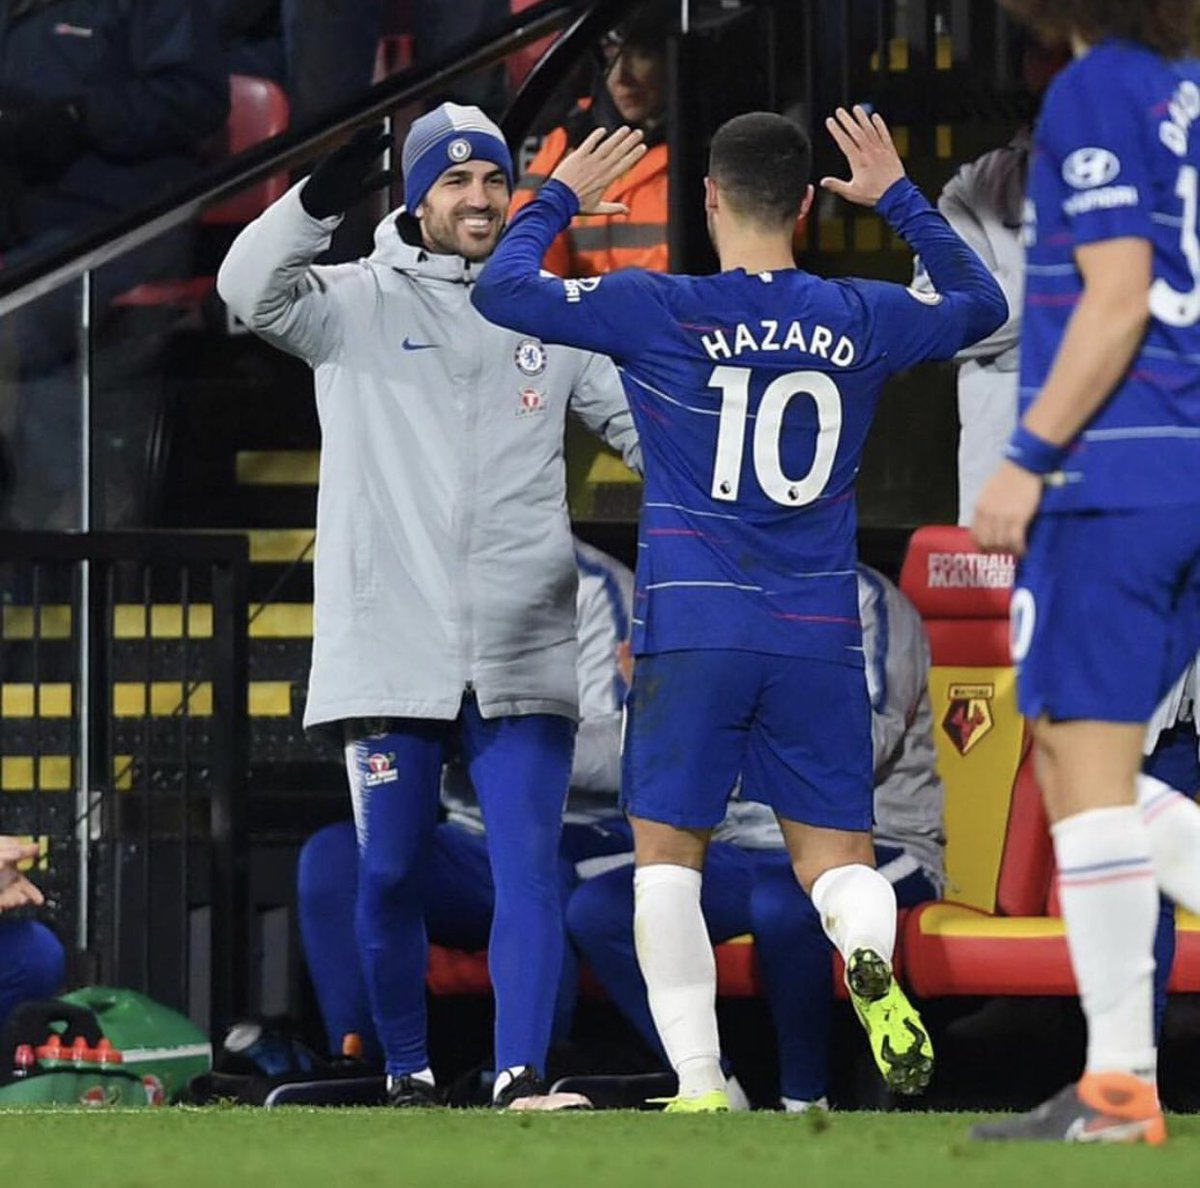 Congratulations to this wonderful player @hazardeden10 for reaching 100 goals with @ChelseaFC 👏🏻